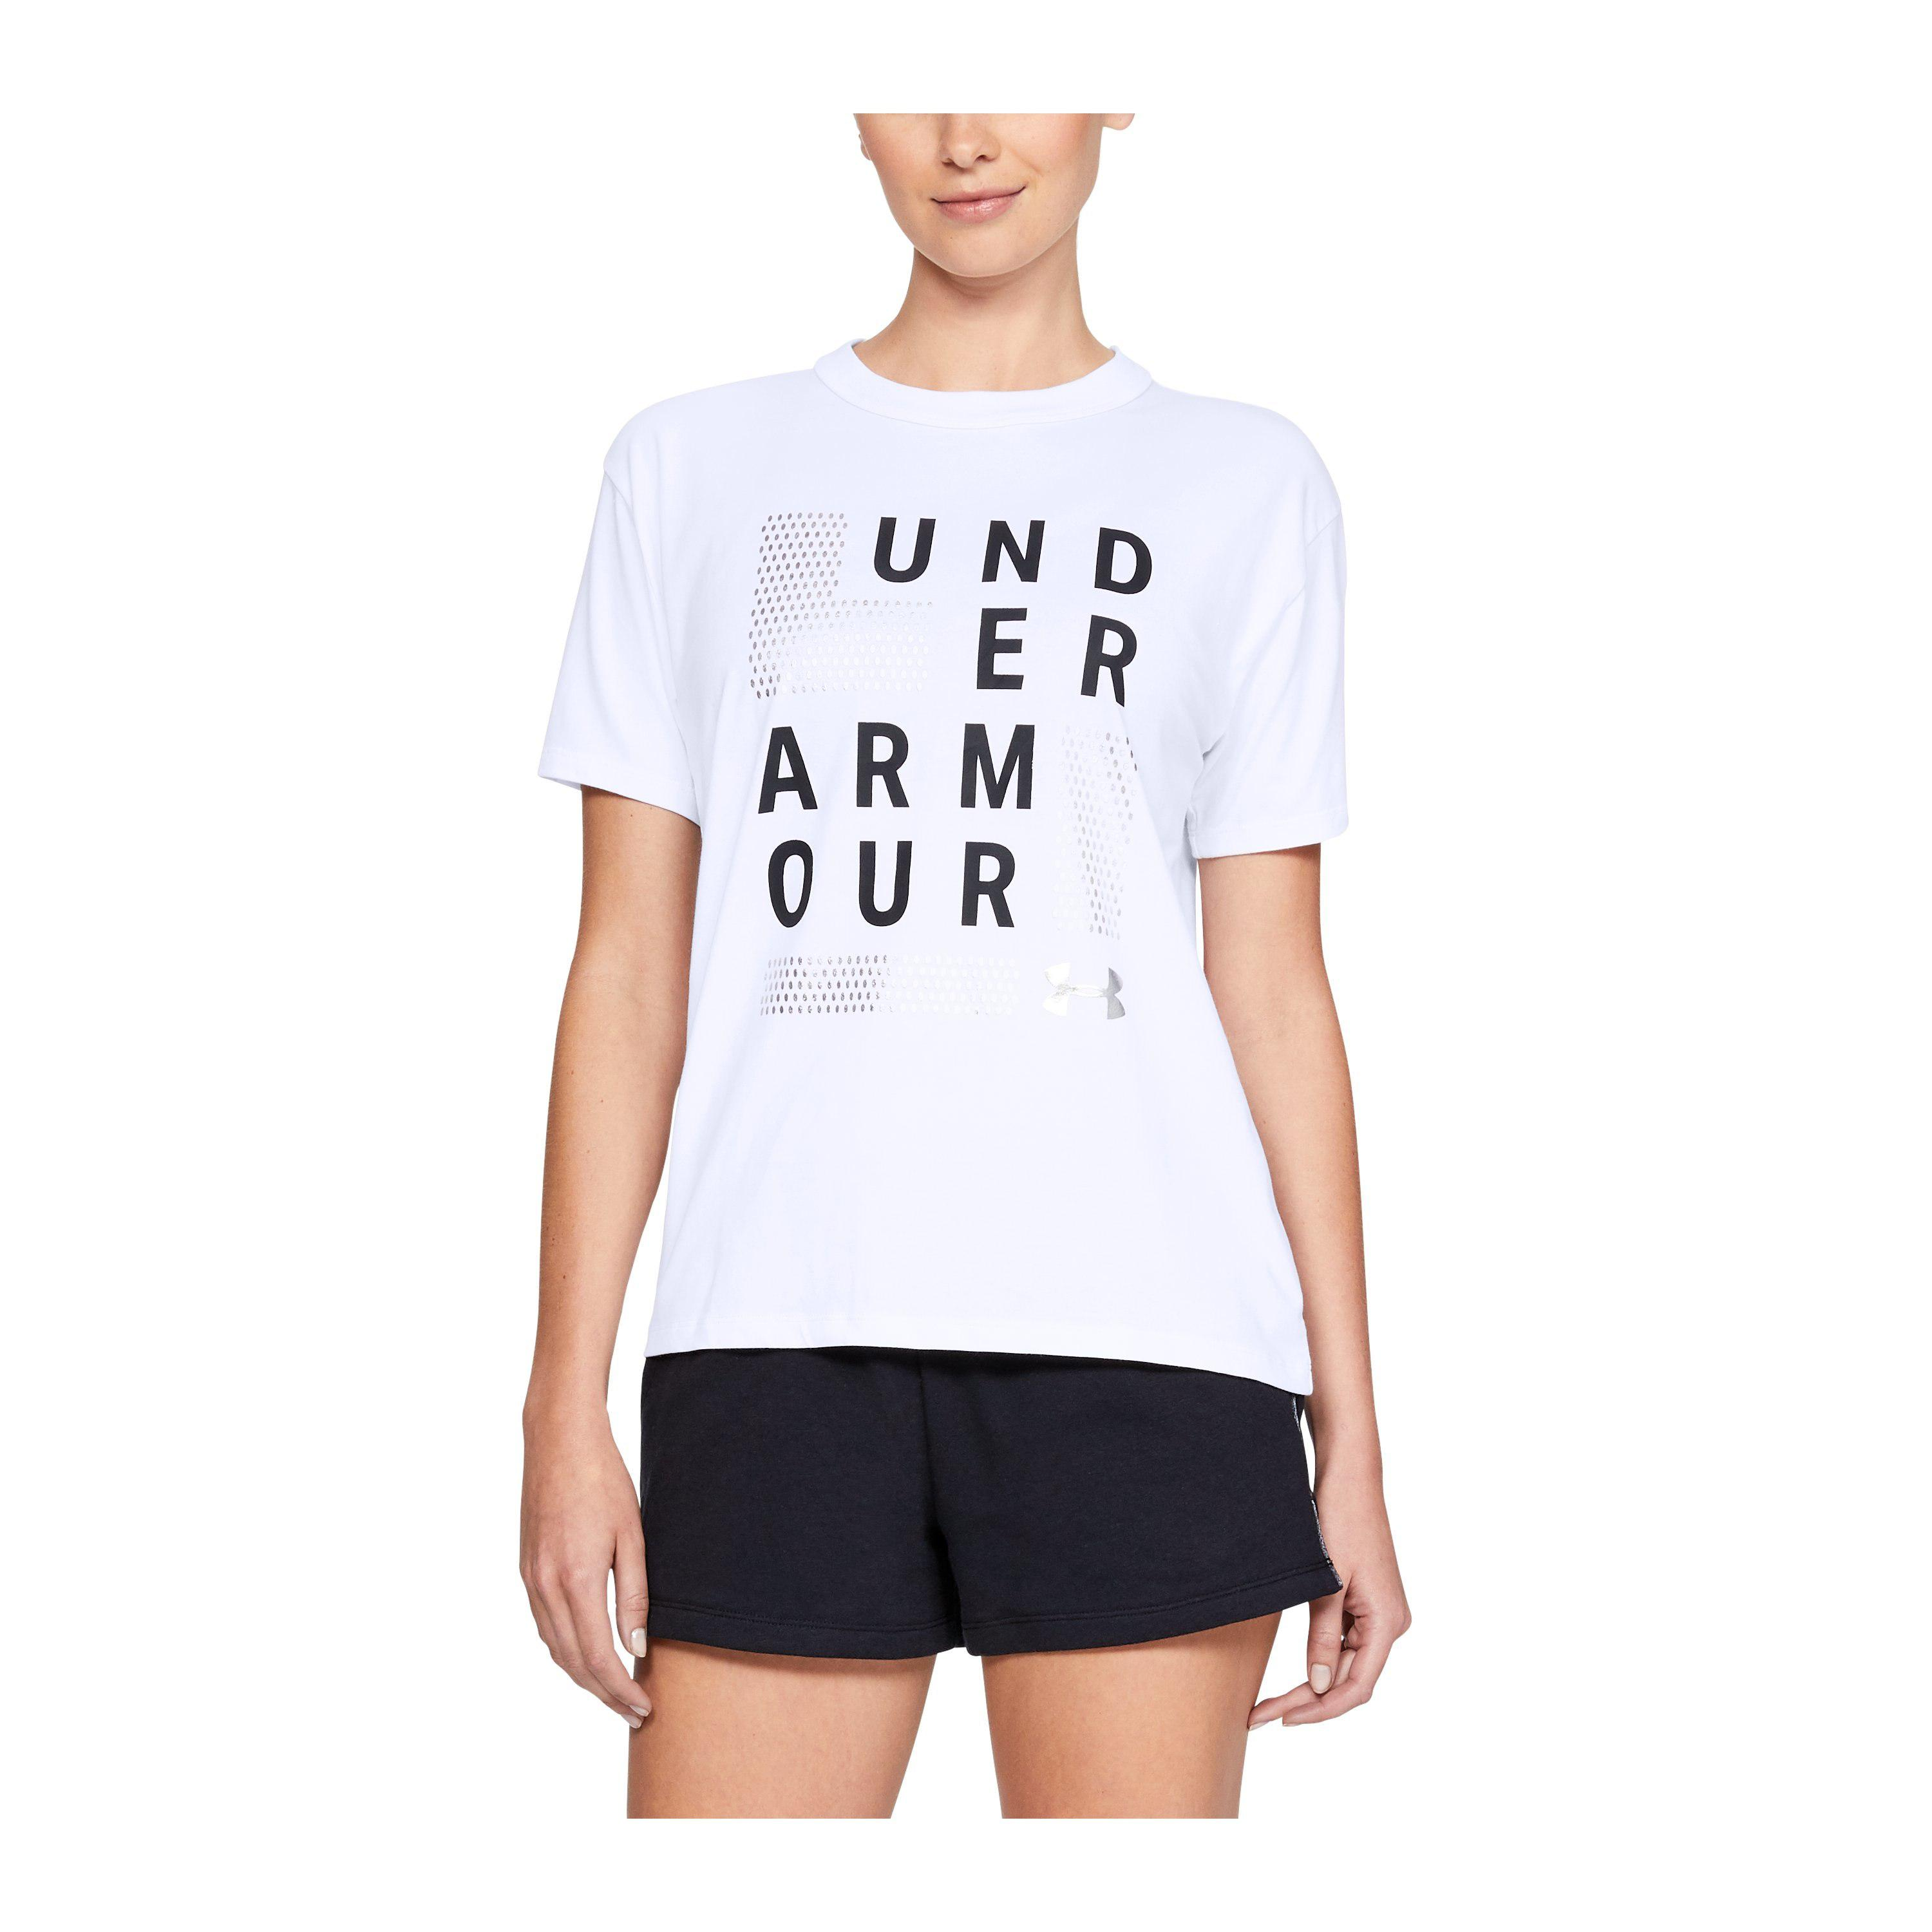 6846471d04 Under Armour Women's Ua Square Logo Girlfriend Crew in White - Lyst